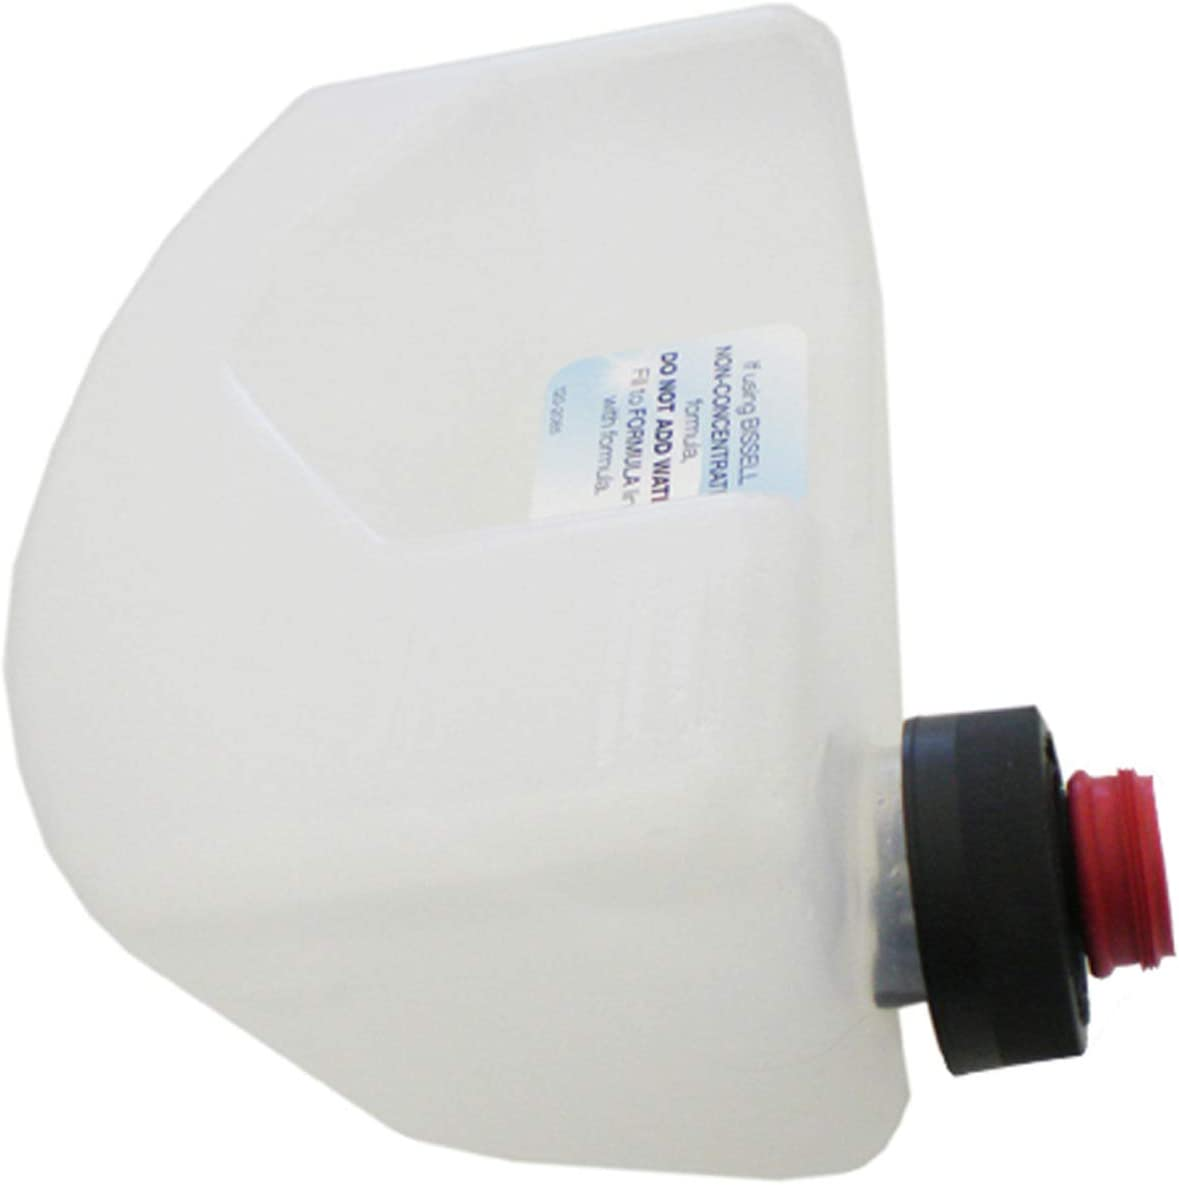 2 Carpet 5% OFF Cleaner Detergent Tank San Francisco Mall FOR Assembly 2036667 203-6676